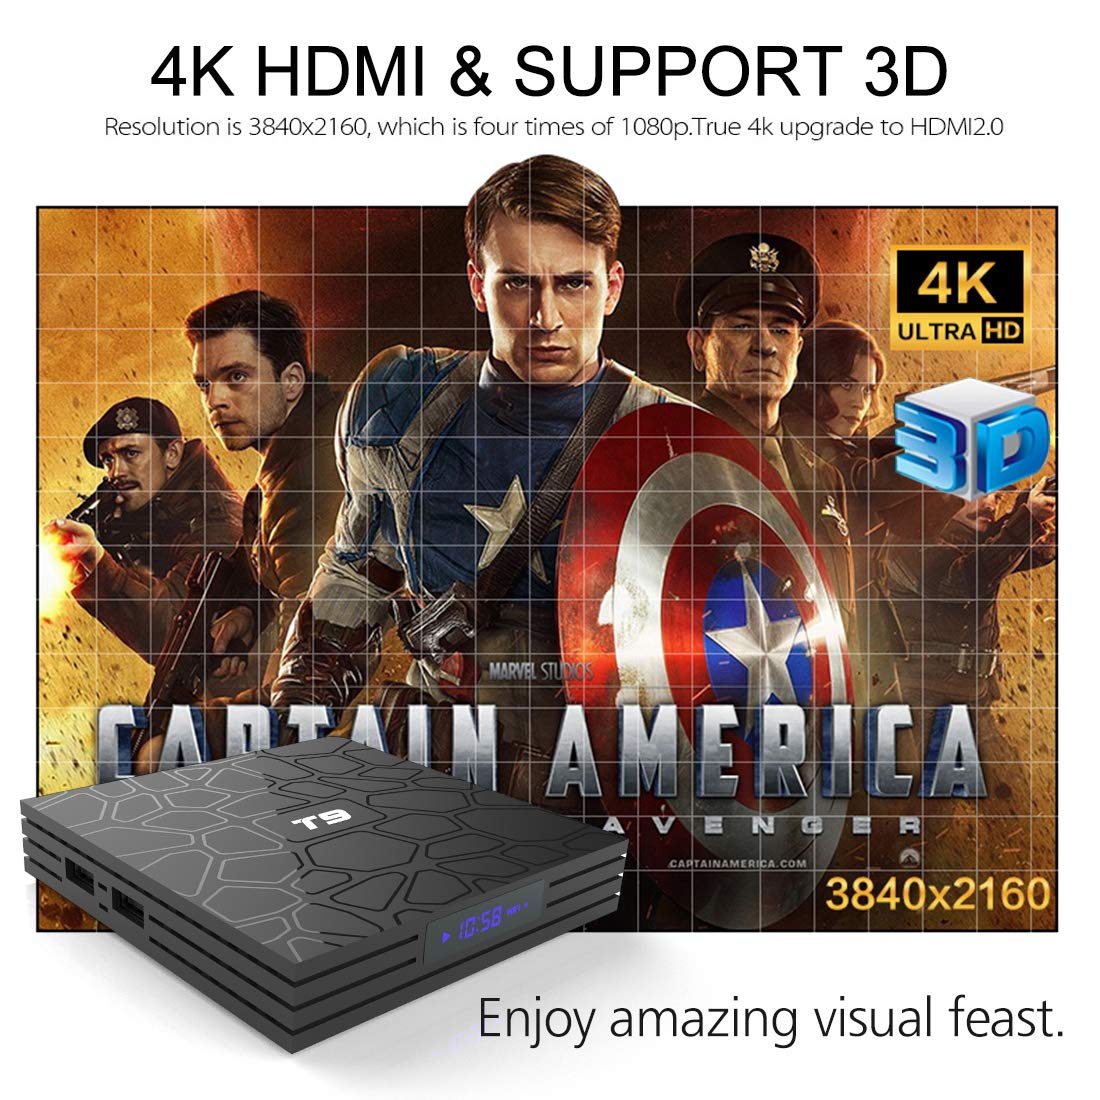 Android TV Box, HAOSIHD T9 Android 8 1 TV Box with Remote Control & Mini  Keyboard, 4GB RAM 32GB ROM RK3328 Quad-core, Support 4K Full HD 2 4Ghz WiFi